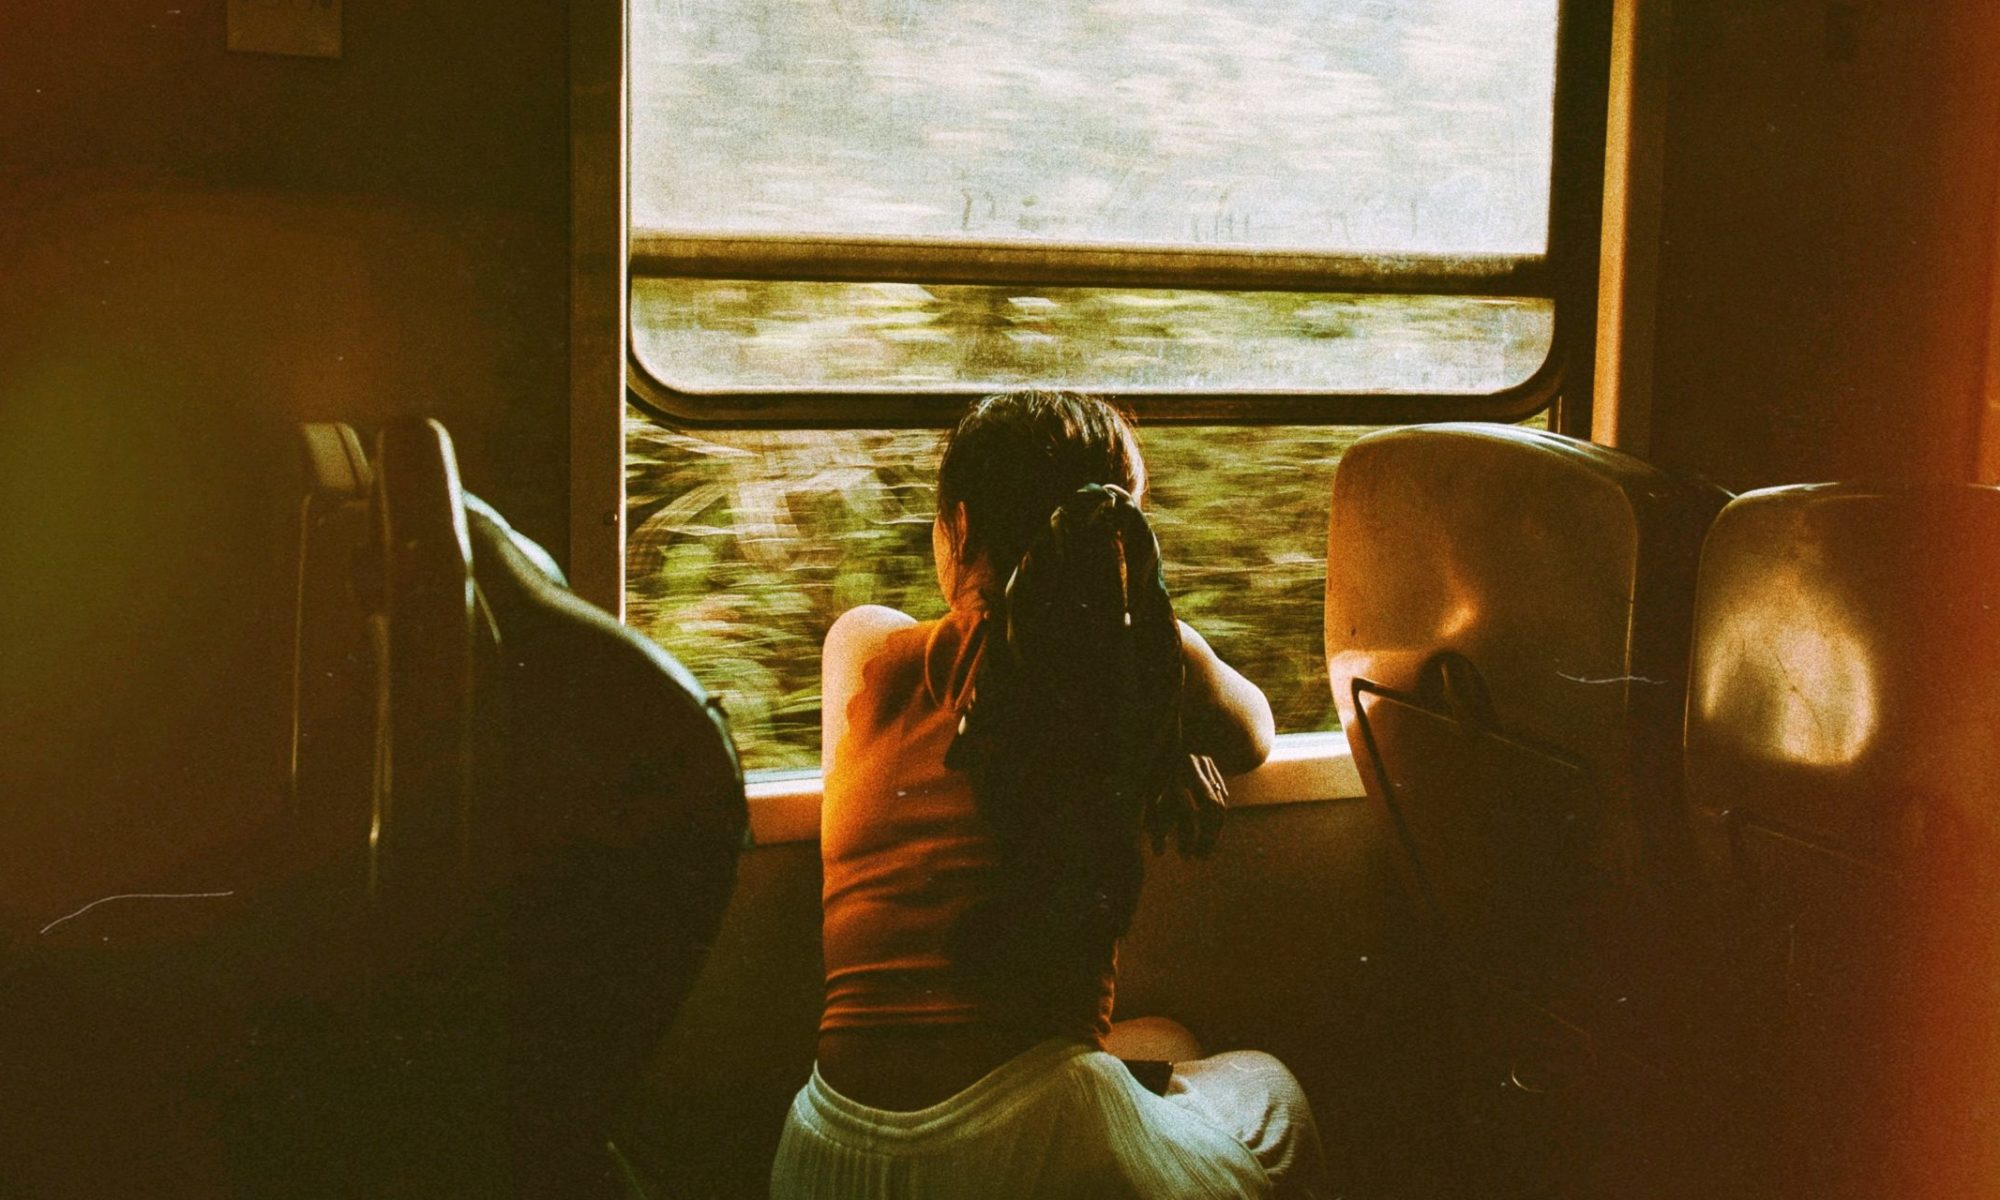 Unrecognizable woman riding train and looking out window